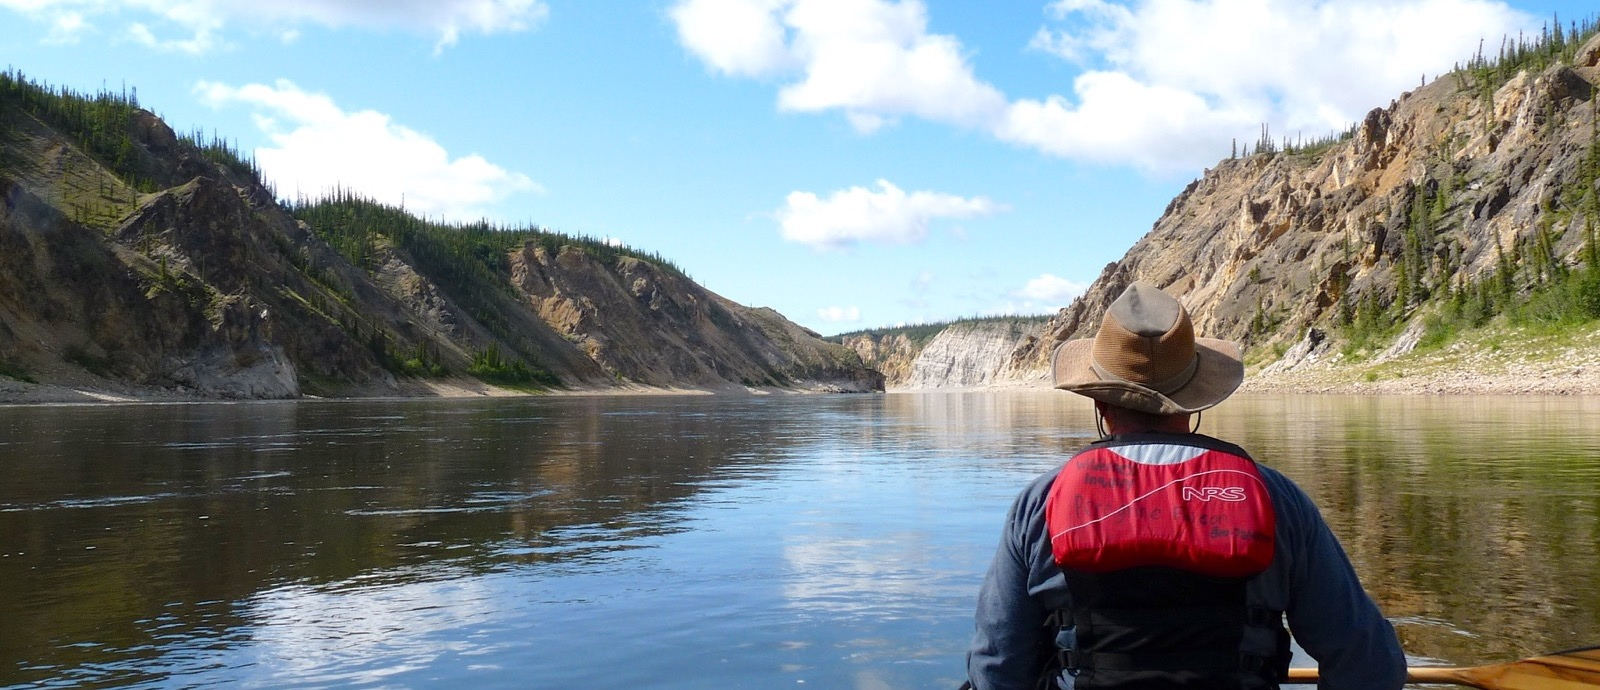 Alaska's Porcupine River Canoe Expedition